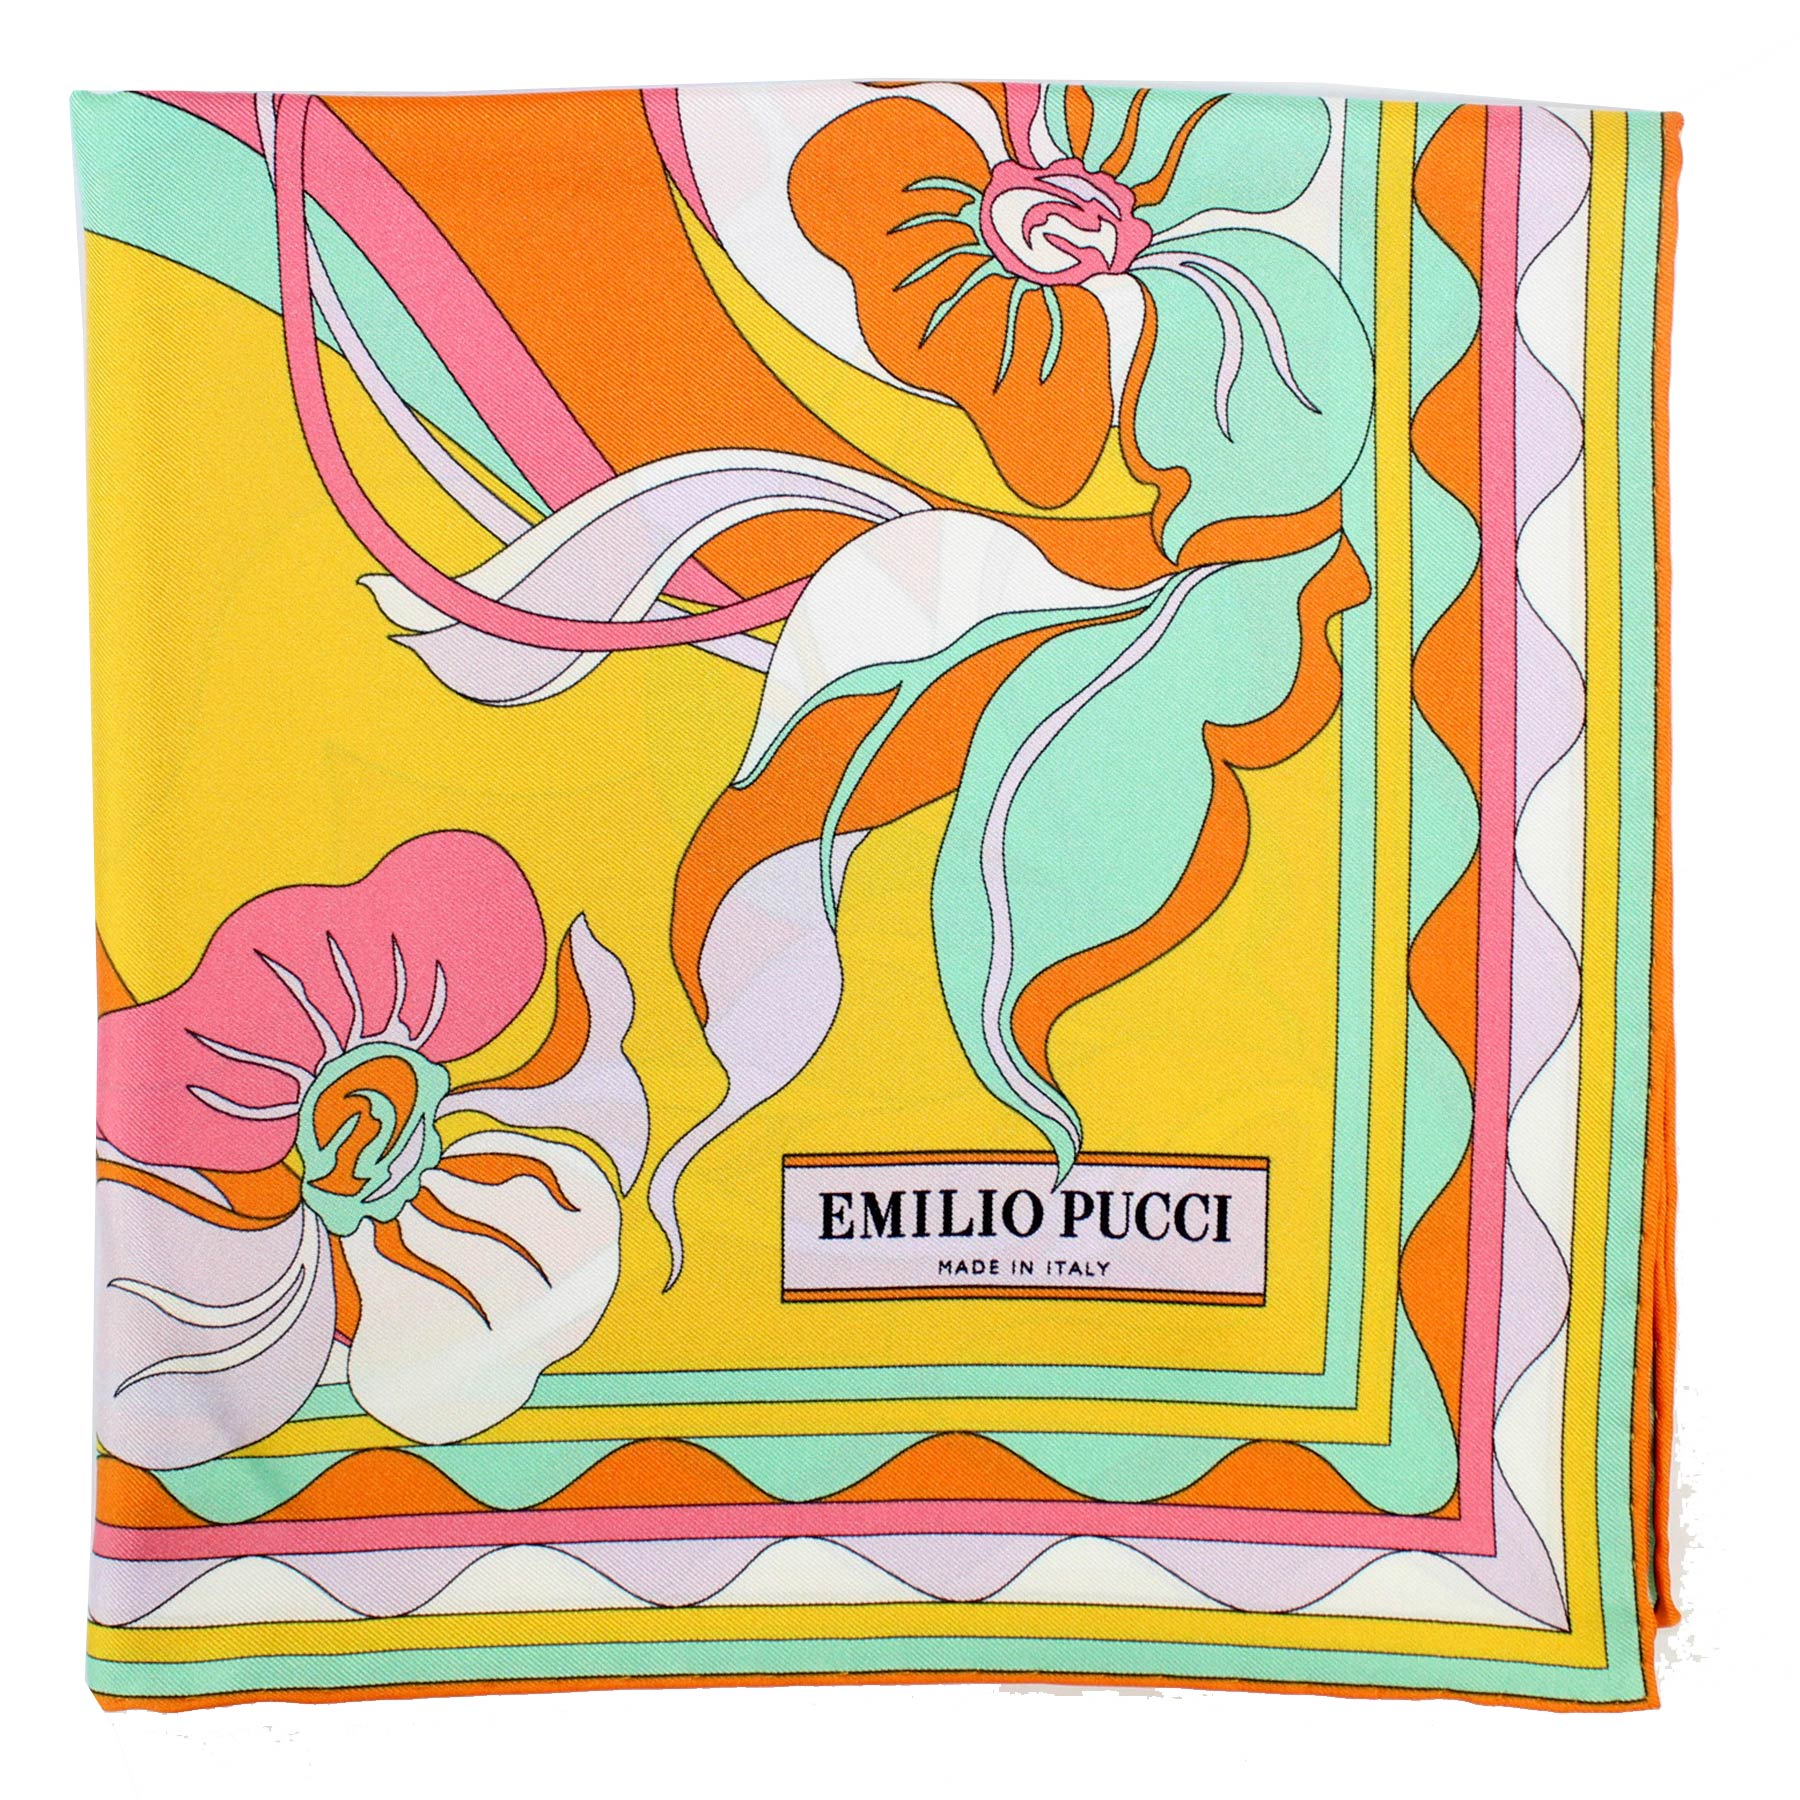 Emilio Pucci Scarf Orange Mint Pink Floral - Large Twill Silk Square Scarf